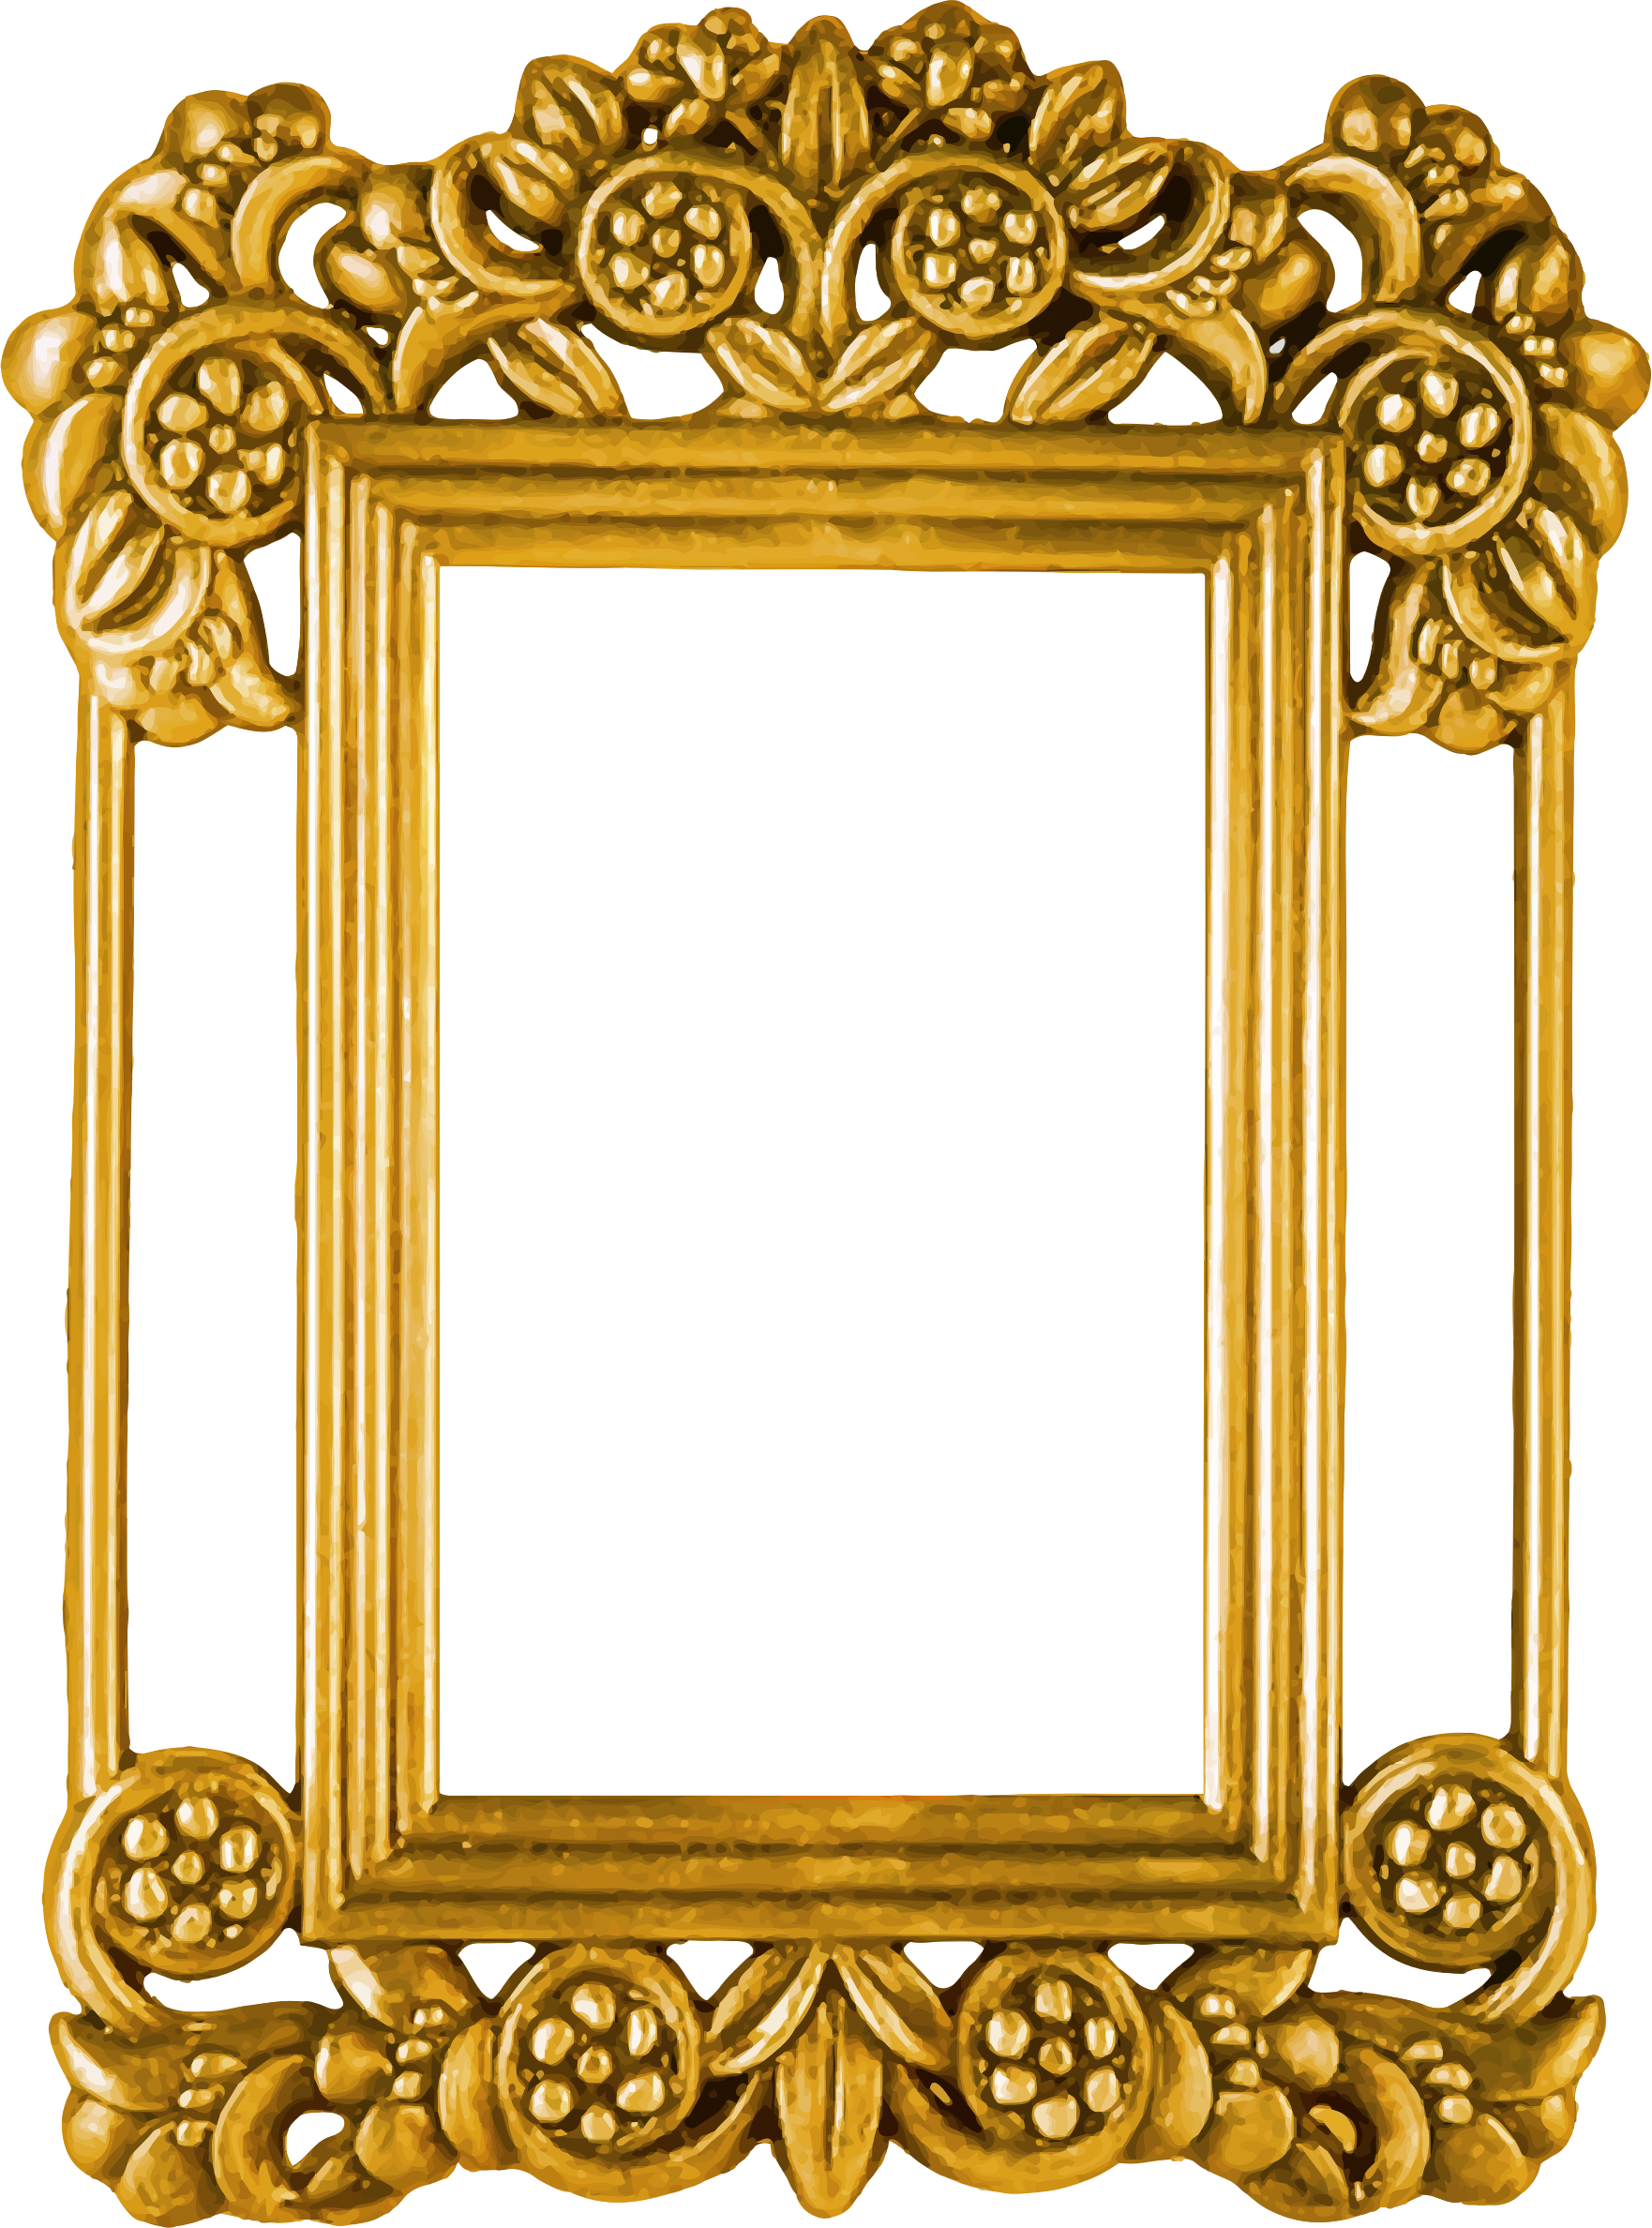 HD Ornate Picture Frame Png.